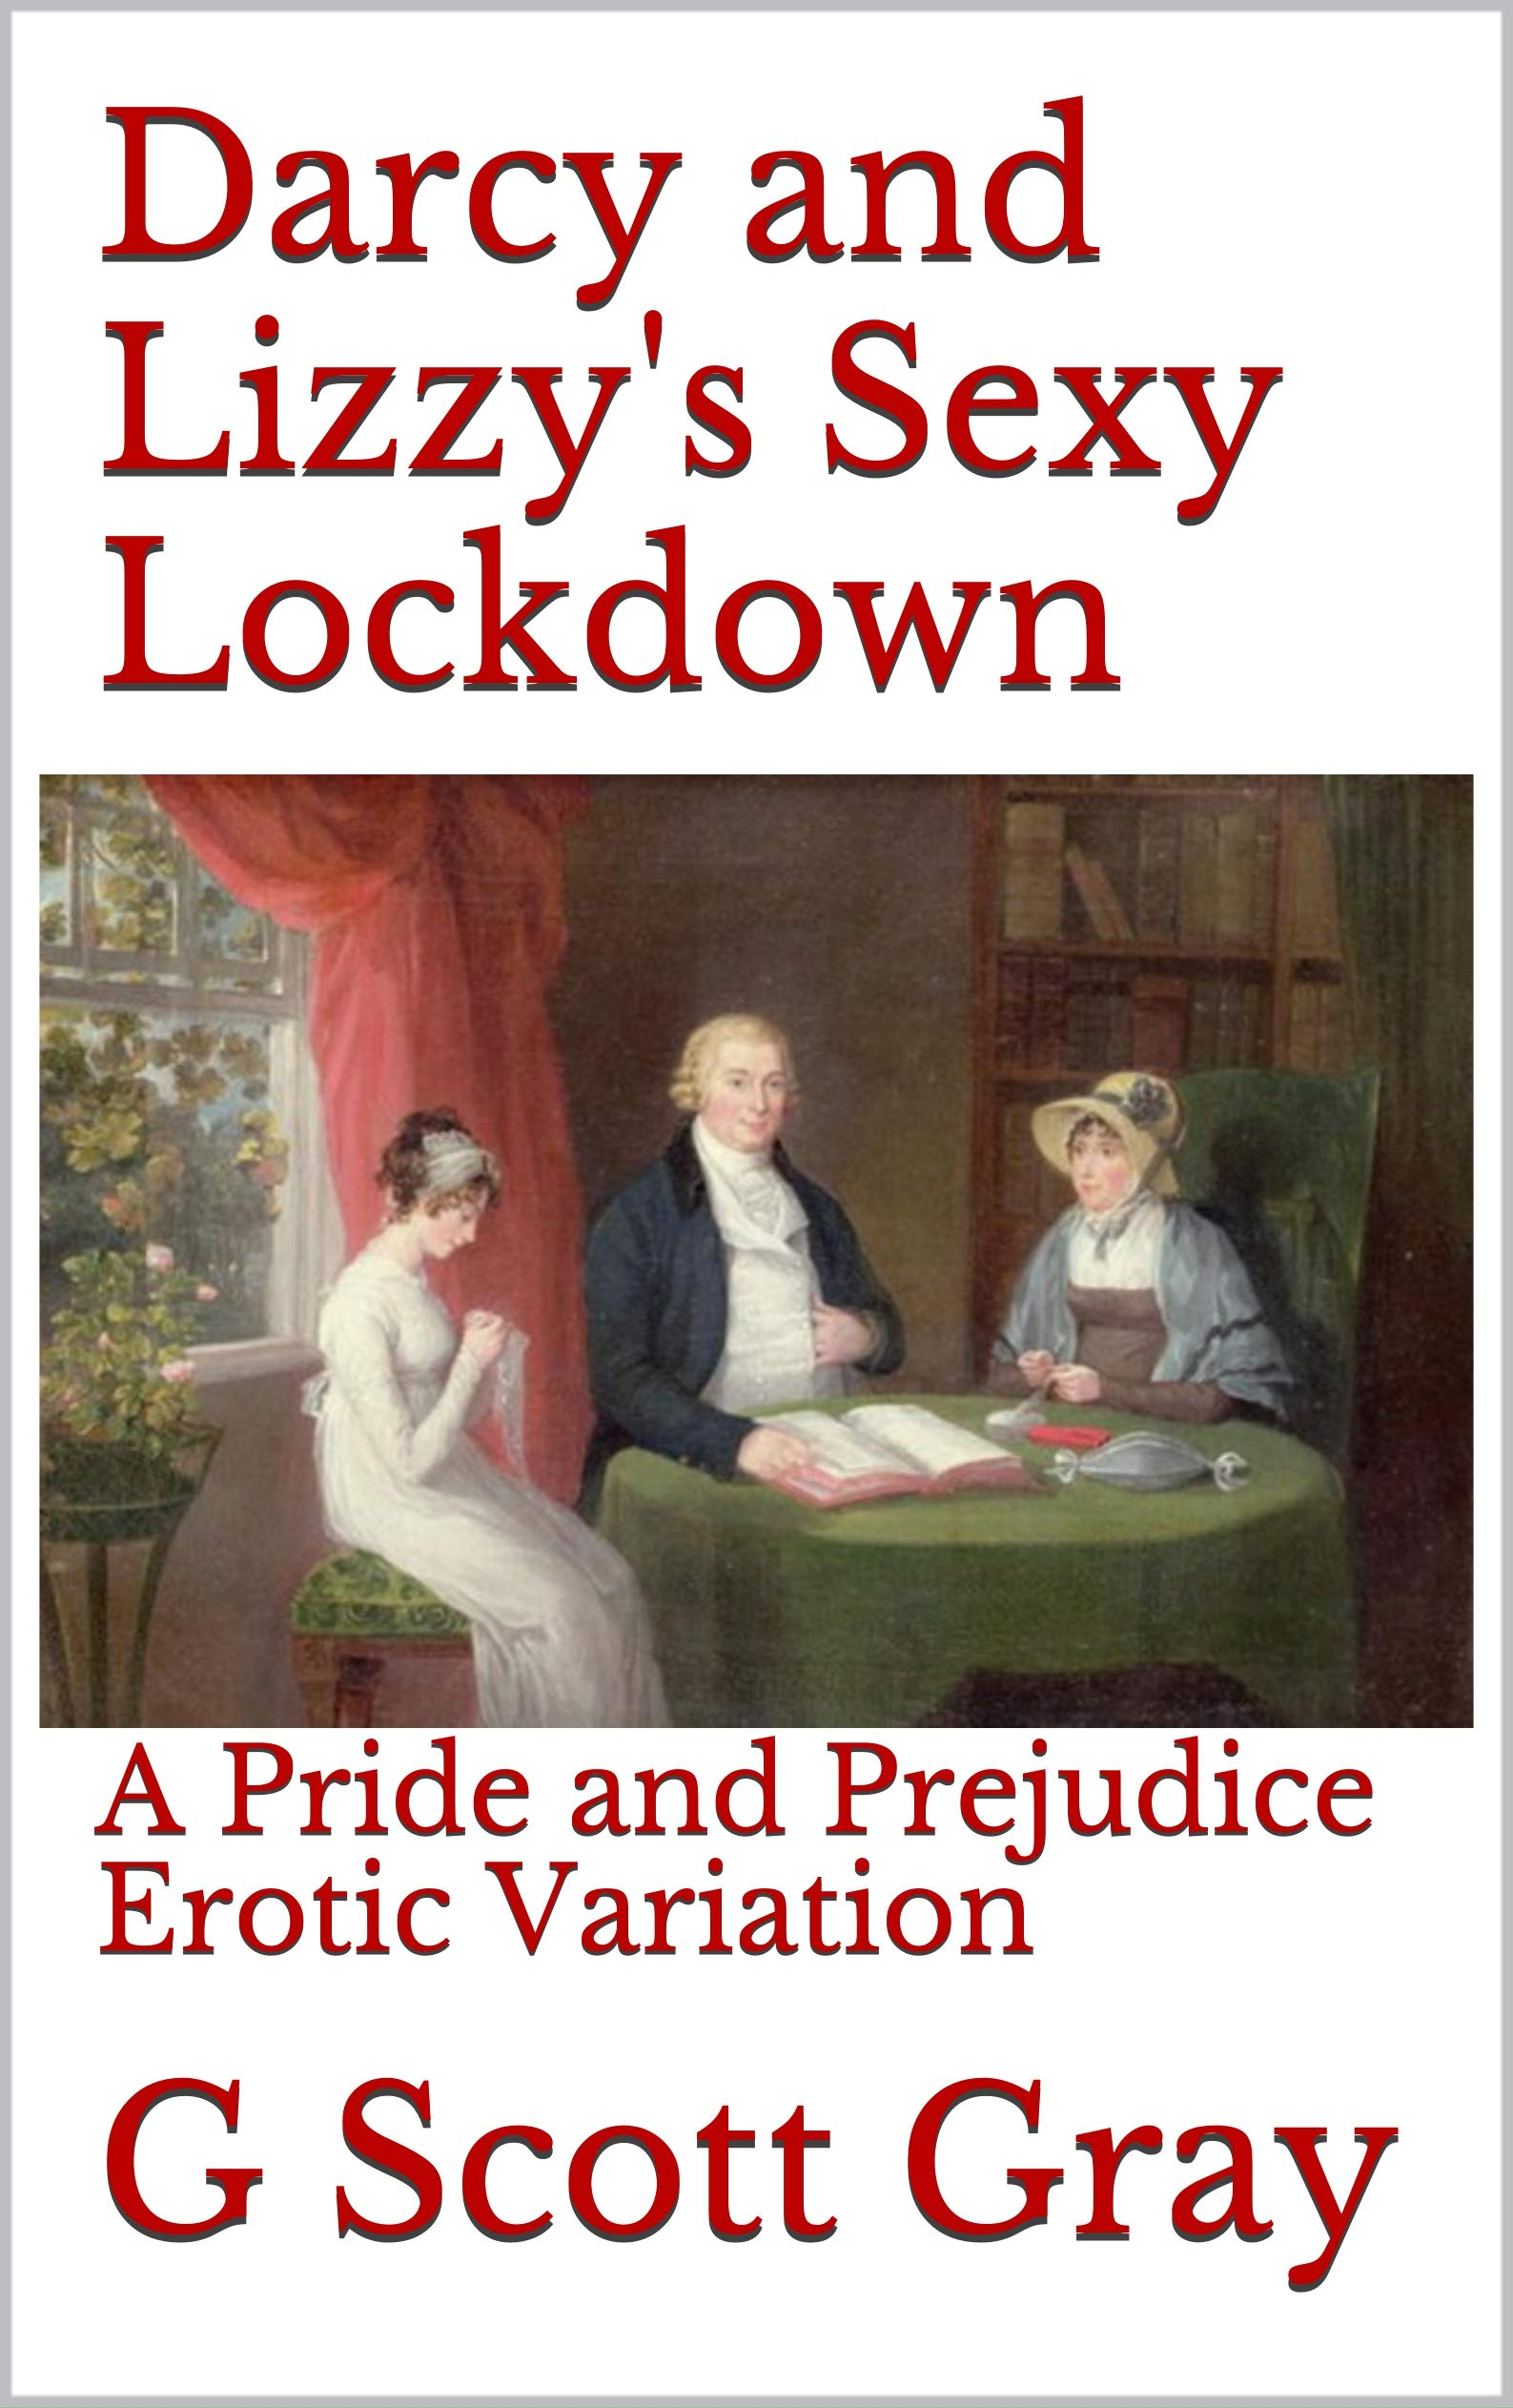 Darcy and Lizzy's Sexy Lockdown: A Pride and Prejudice Erotic Variation